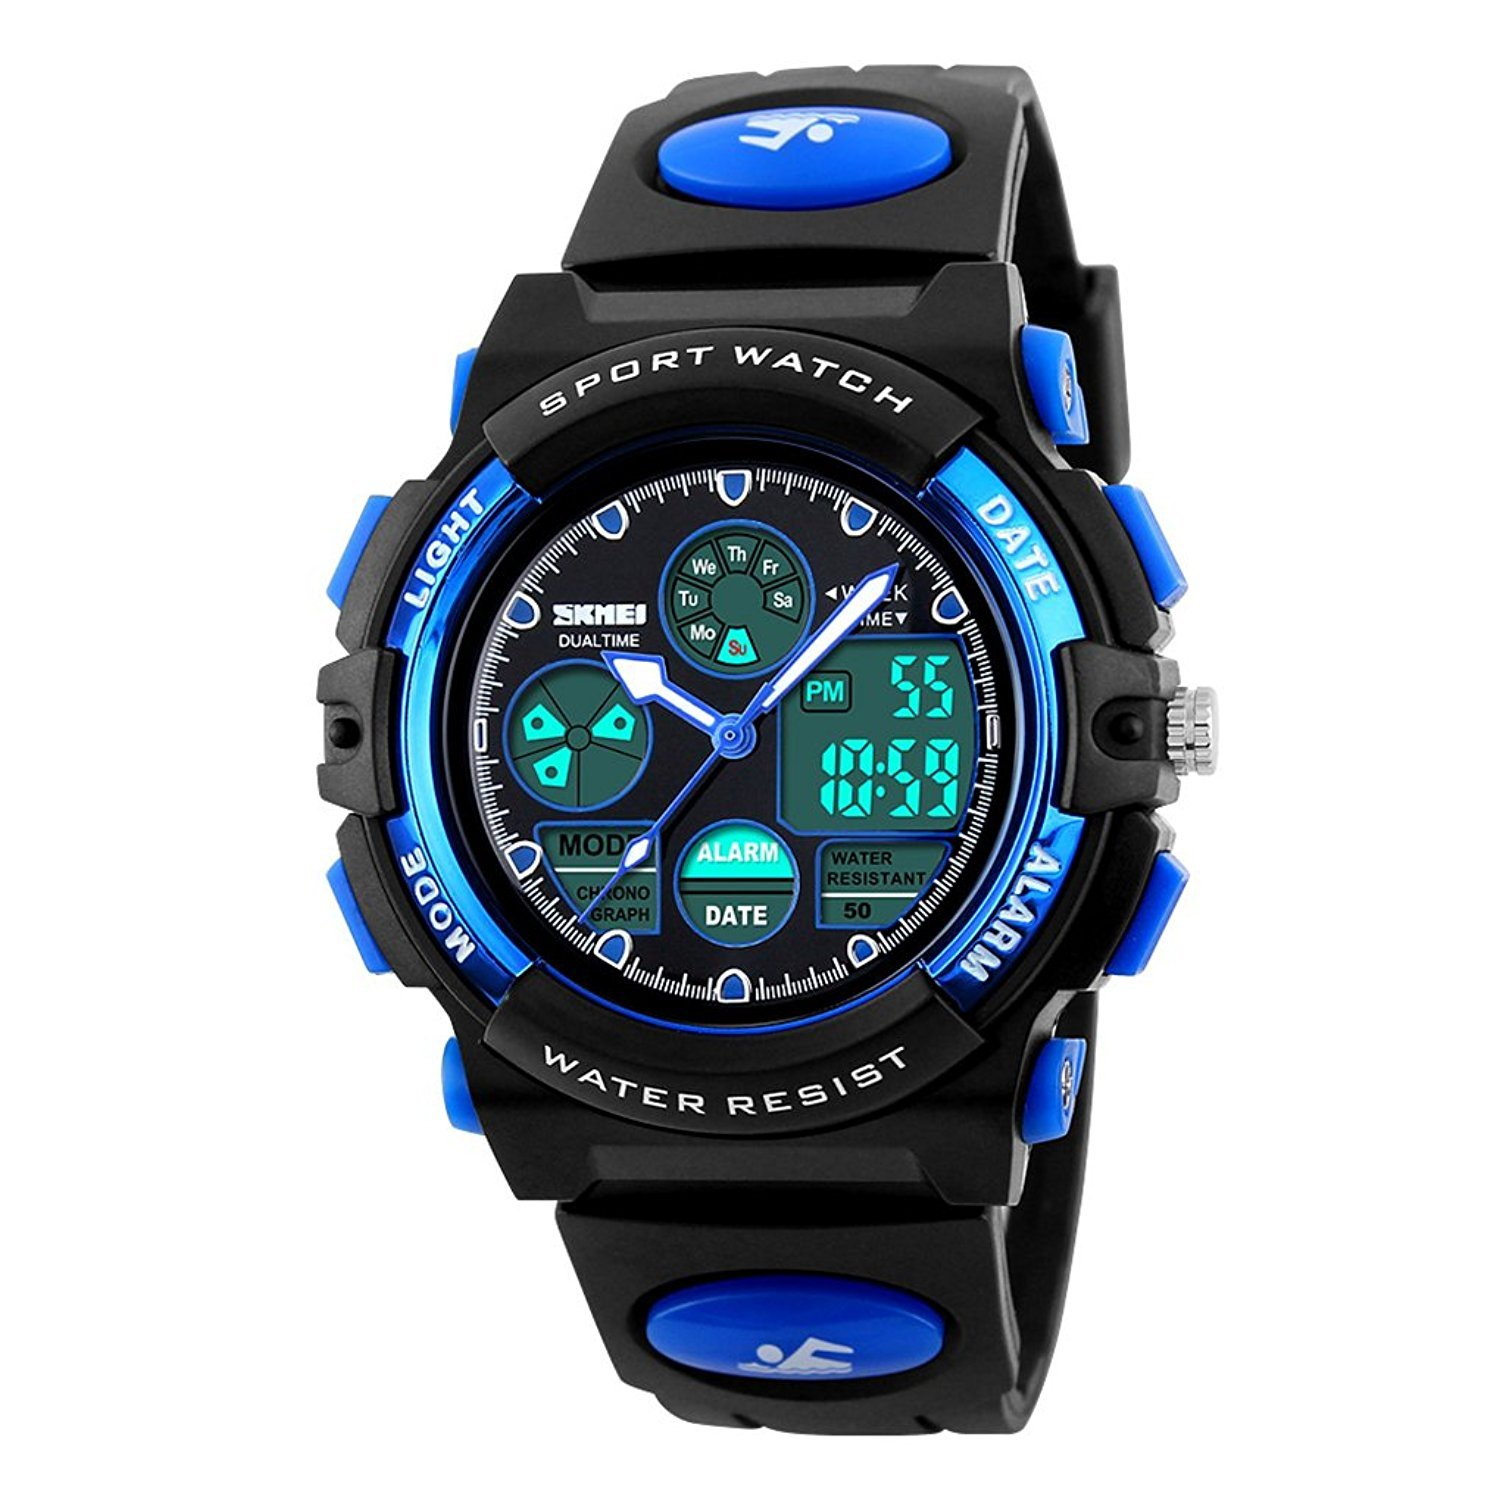 Kids Sports Digital Watch, Boys Girls Outdoor Waterproof Watches Children Analog Quartz Wrist Watch with Alarm - Blue by cofuo